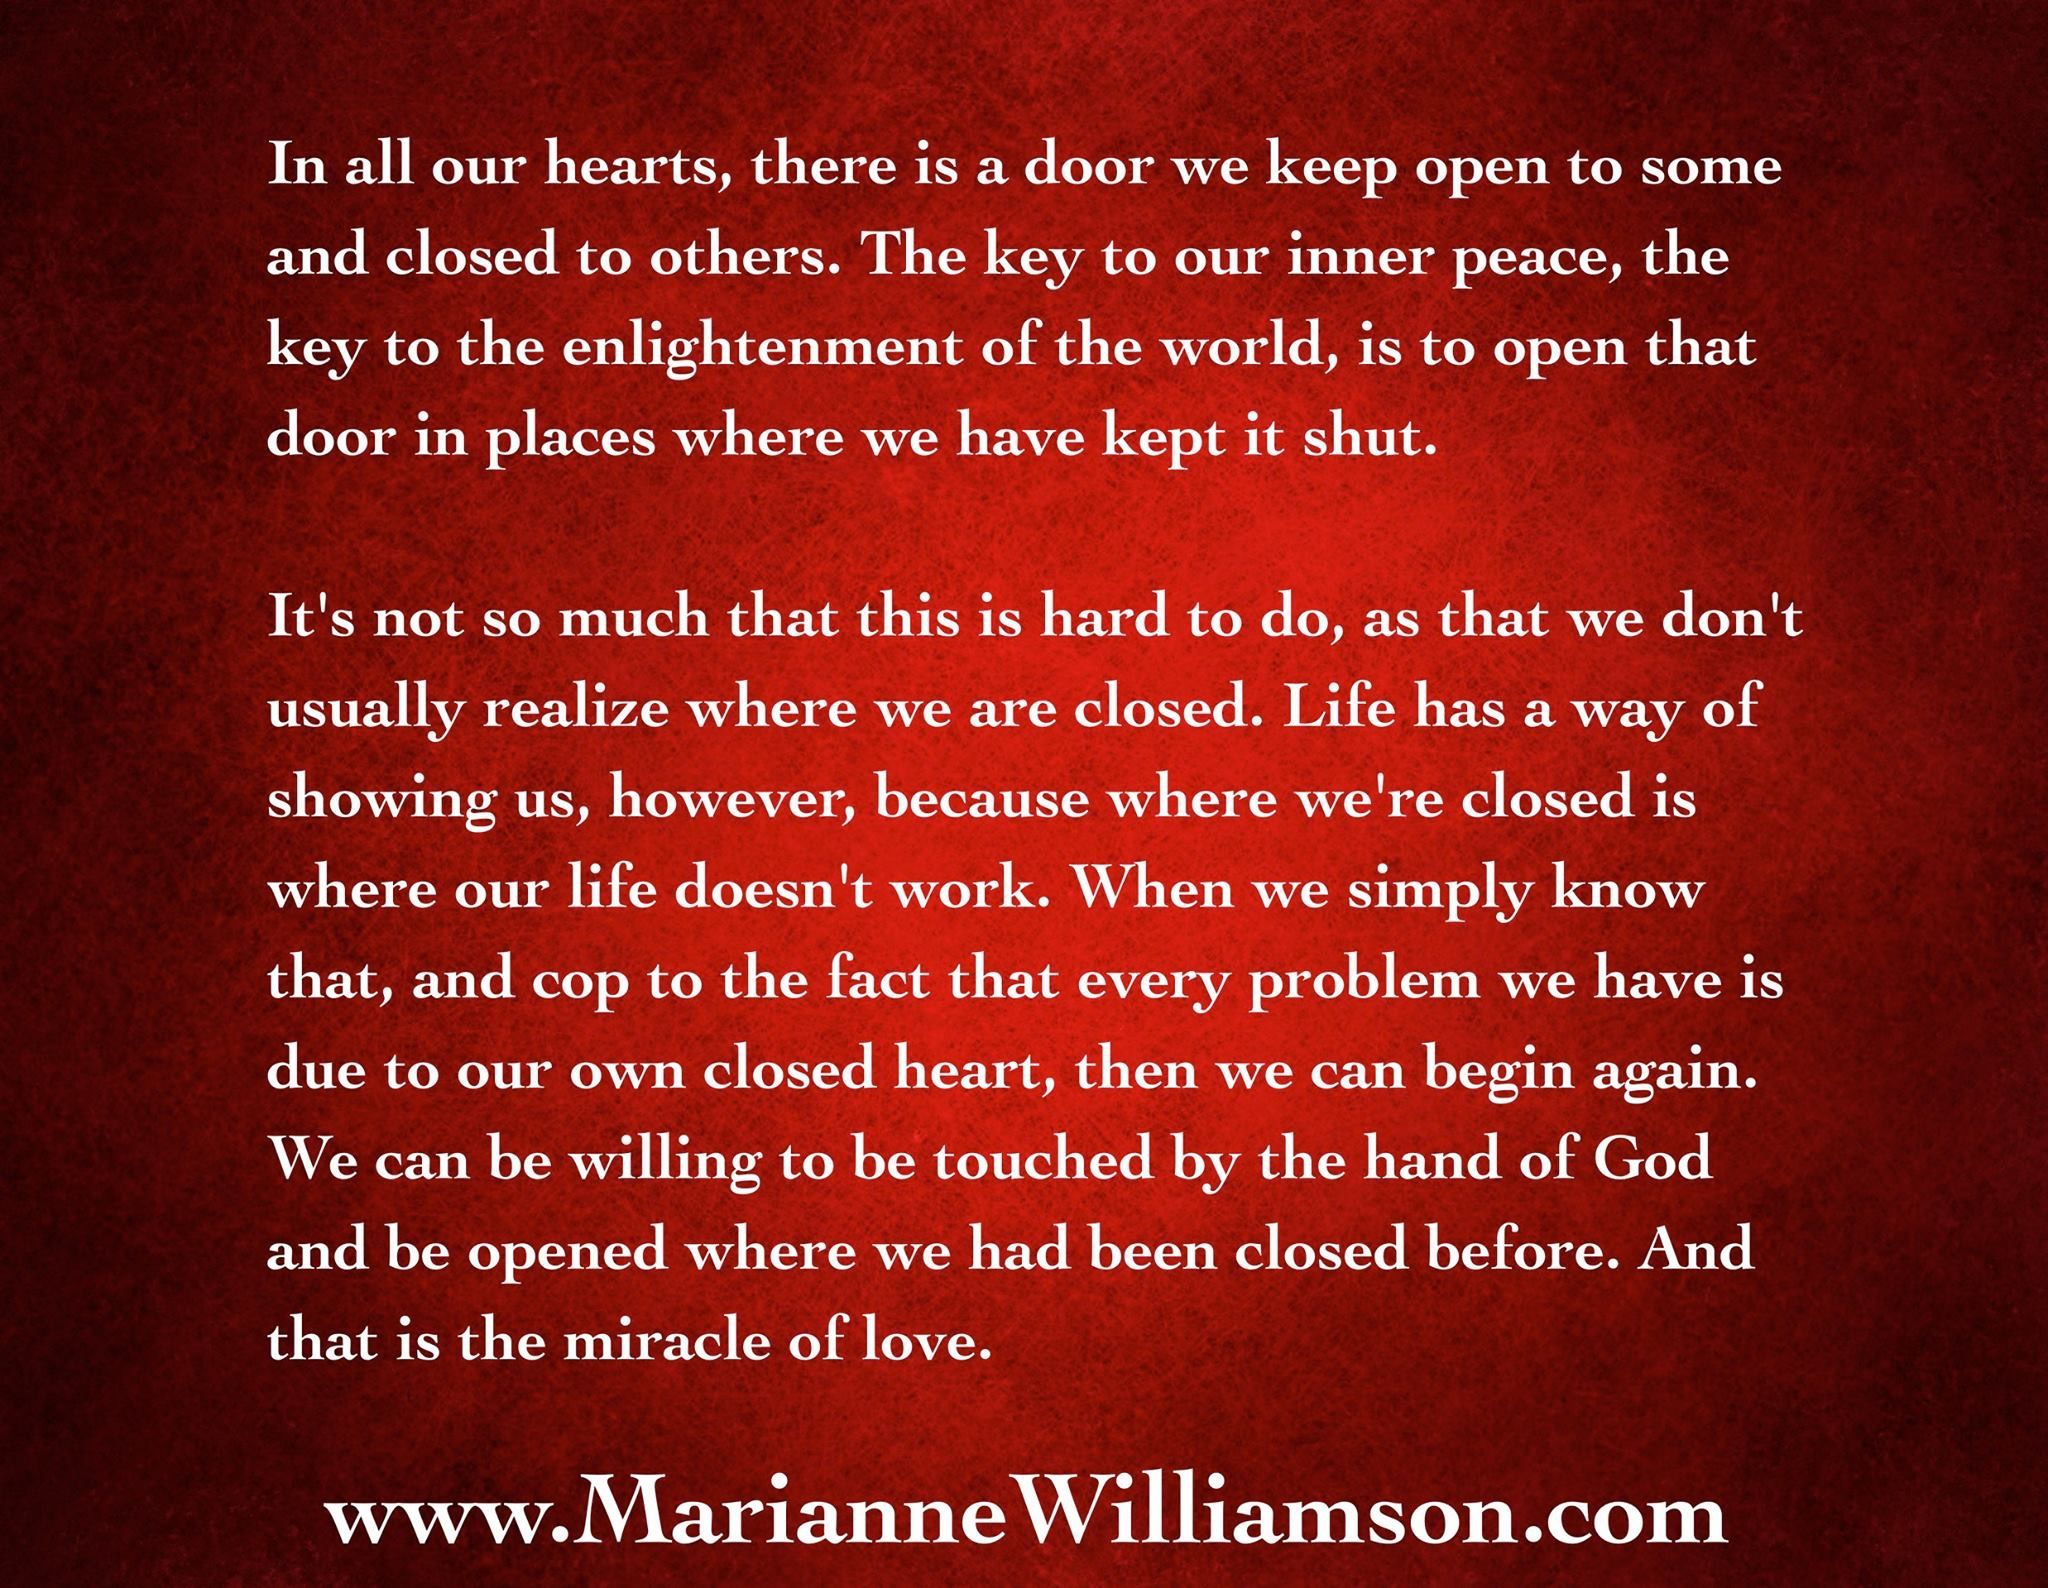 Marianne Williamson Love Quotes Pinsujeeta Malik☀ On Marianne Williamson ☀  Pinterest